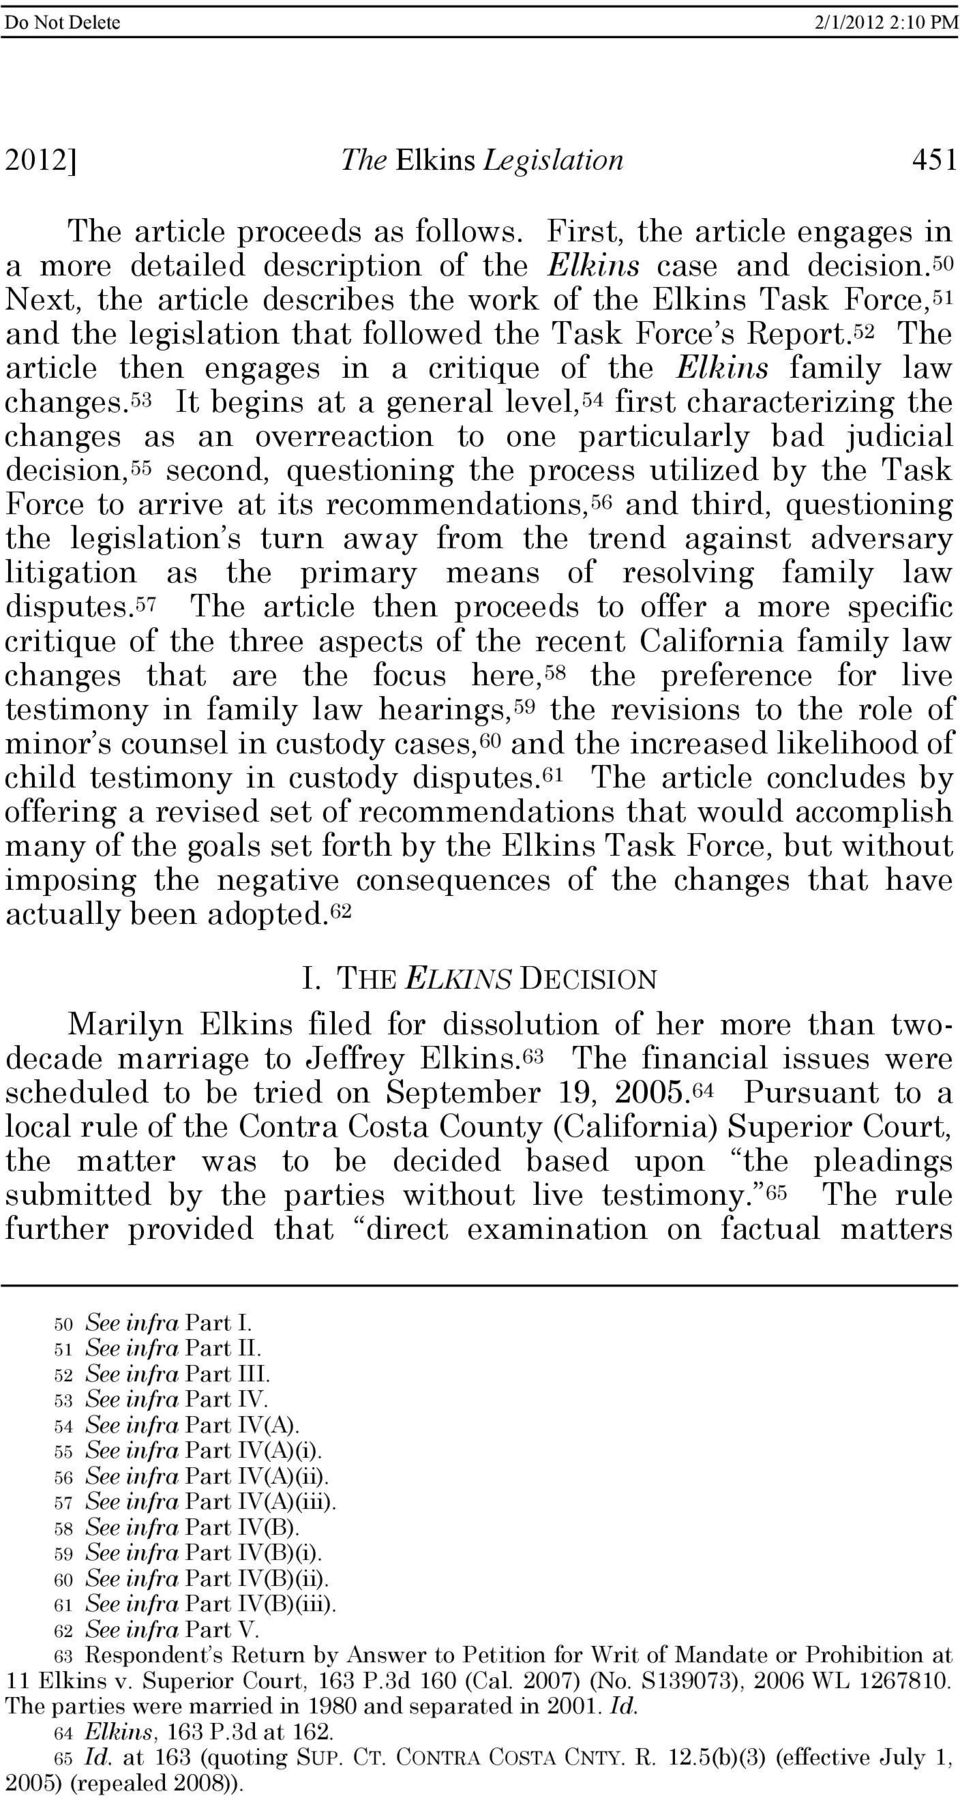 52 The article then engages in a critique of the Elkins family law changes.